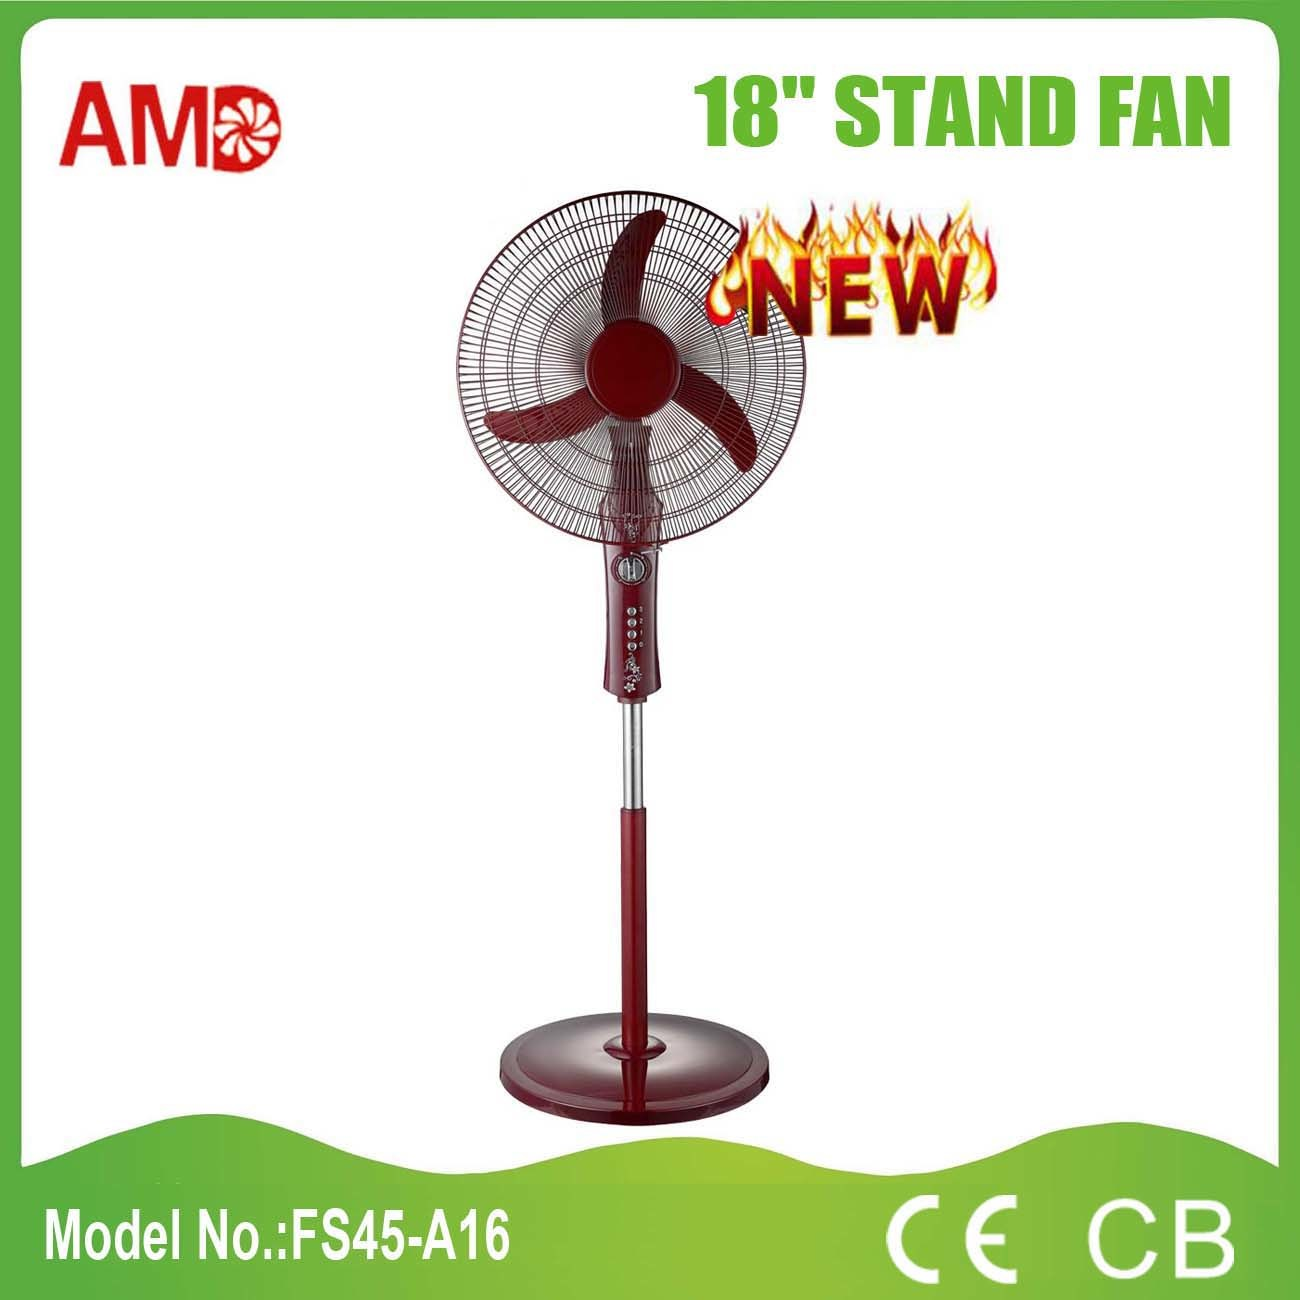 "Hot-Sale Good Design 18"" Stand Fan with Ce CB Approved (FS45-A16)"